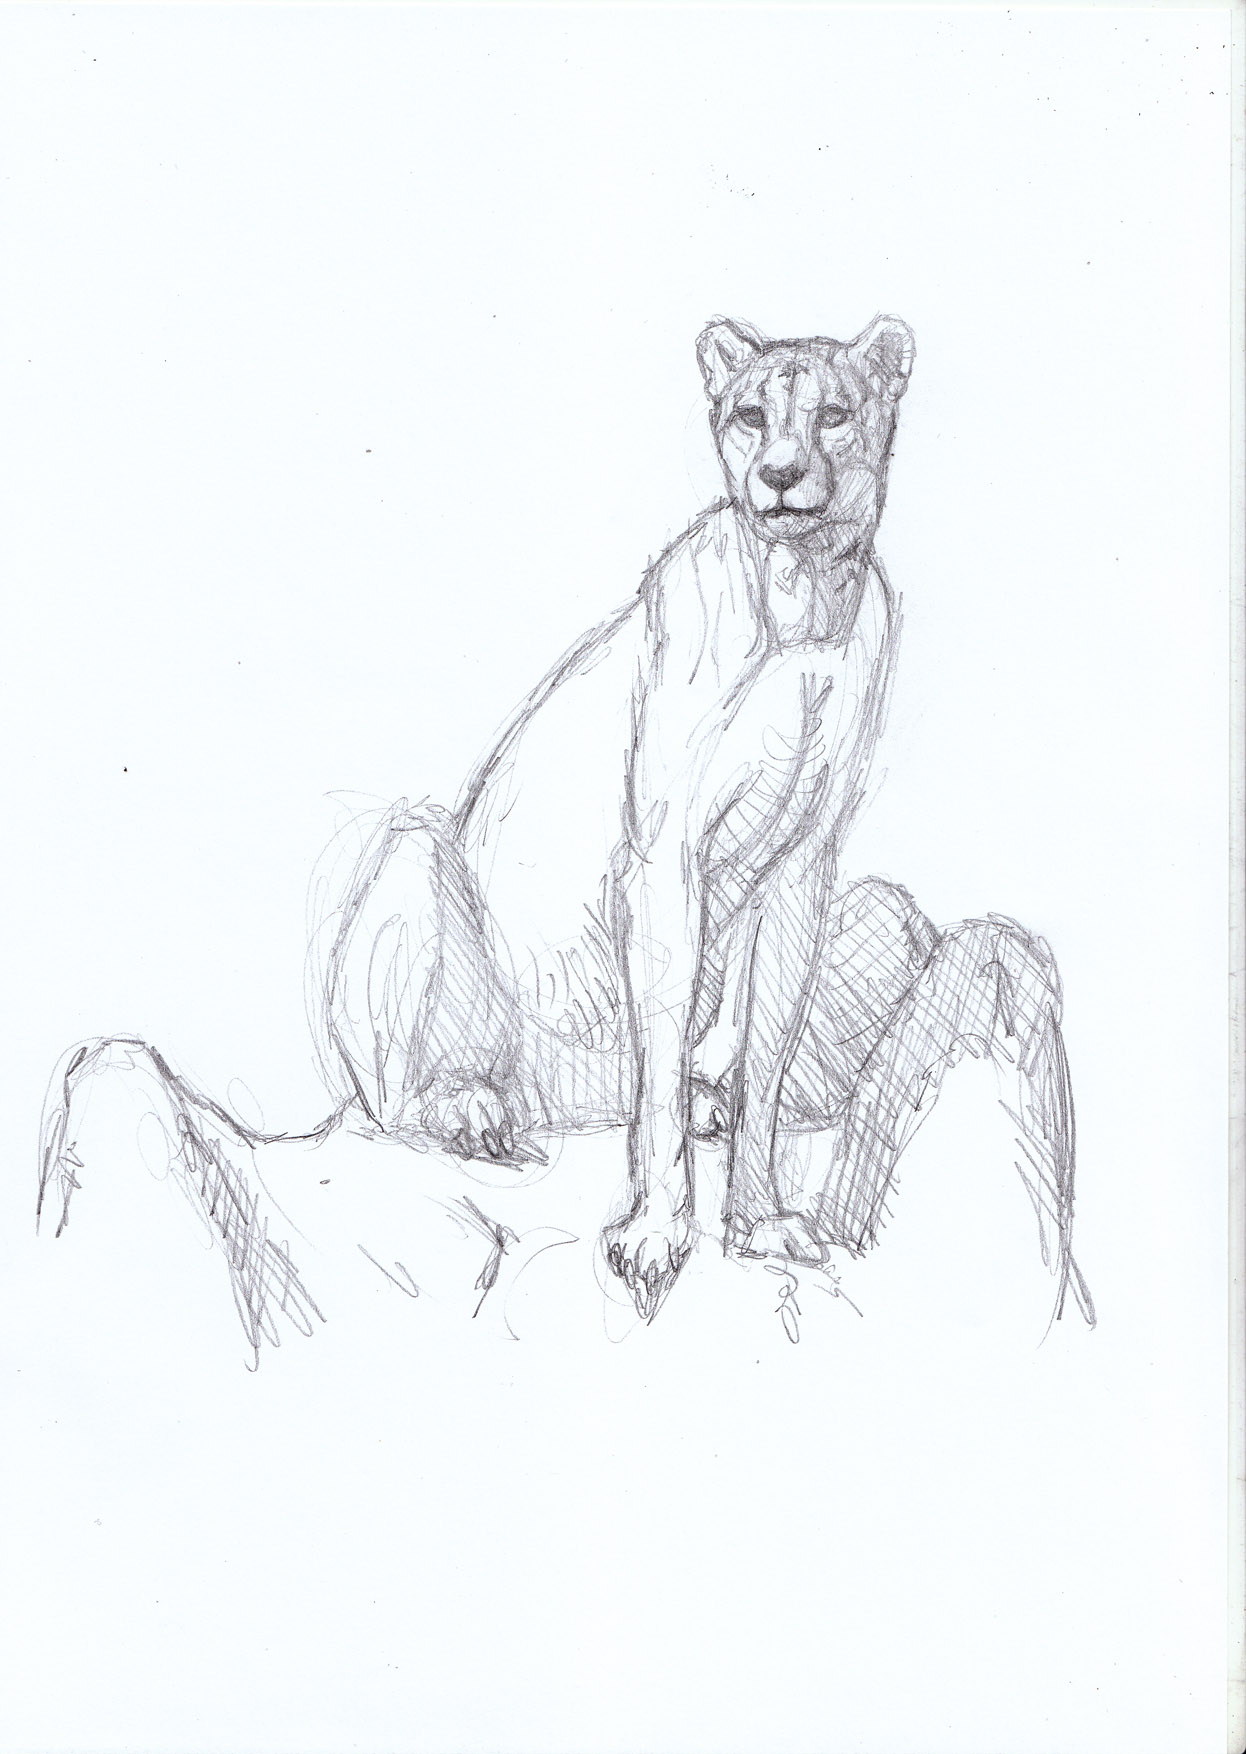 1246x1754 Looking From A High Place Cheetah On Termite Mound Sketch